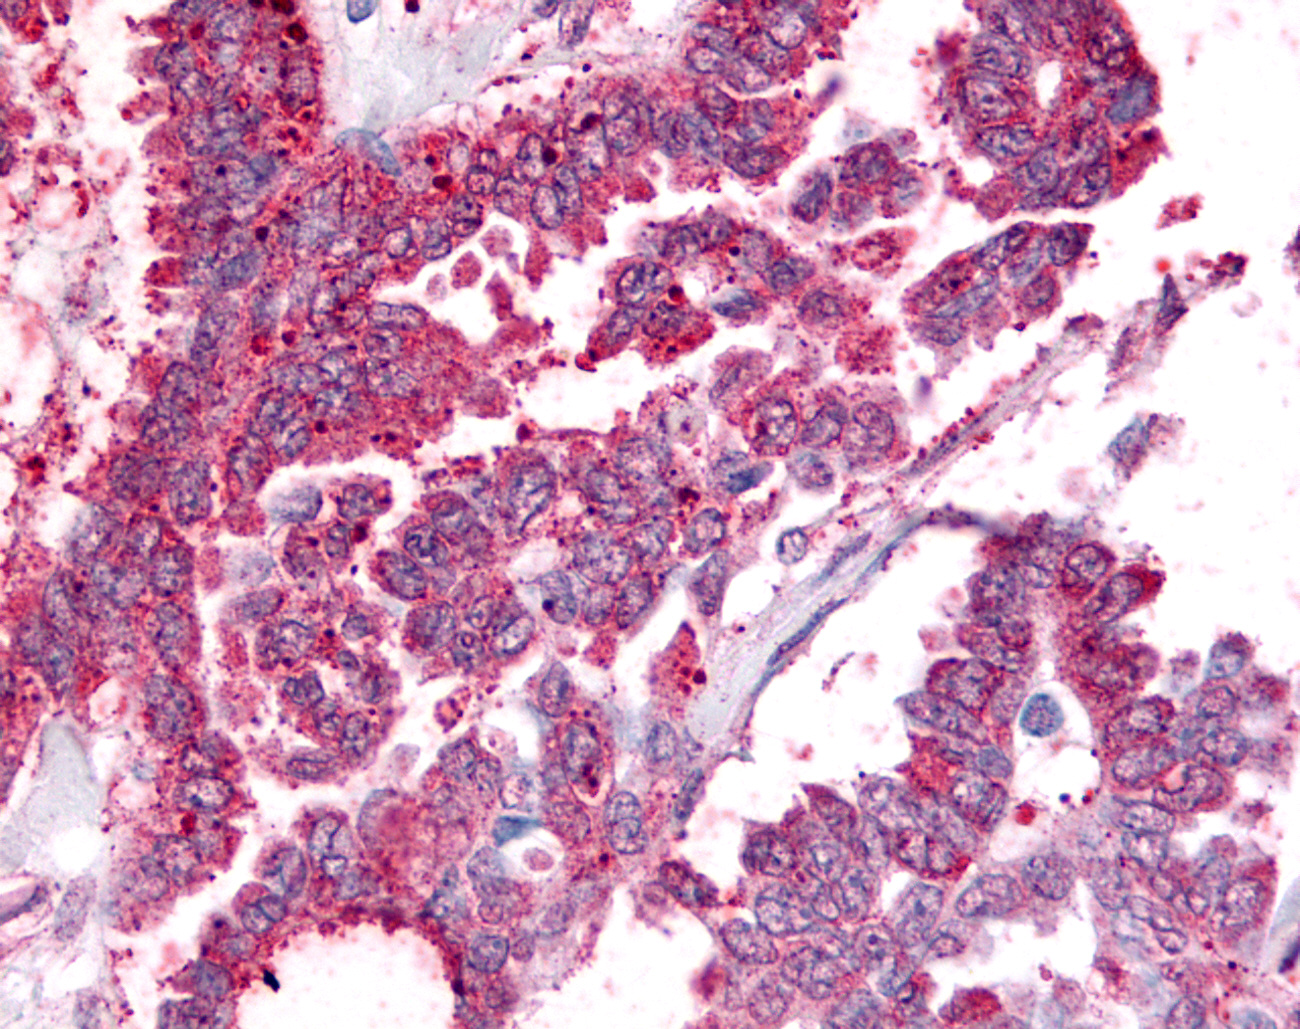 PGES / PTGES Antibody - Anti-PGES / PTGES antibody IHC of human Ovary, Carcinoma. Immunohistochemistry of formalin-fixed, paraffin-embedded tissue after heat-induced antigen retrieval.